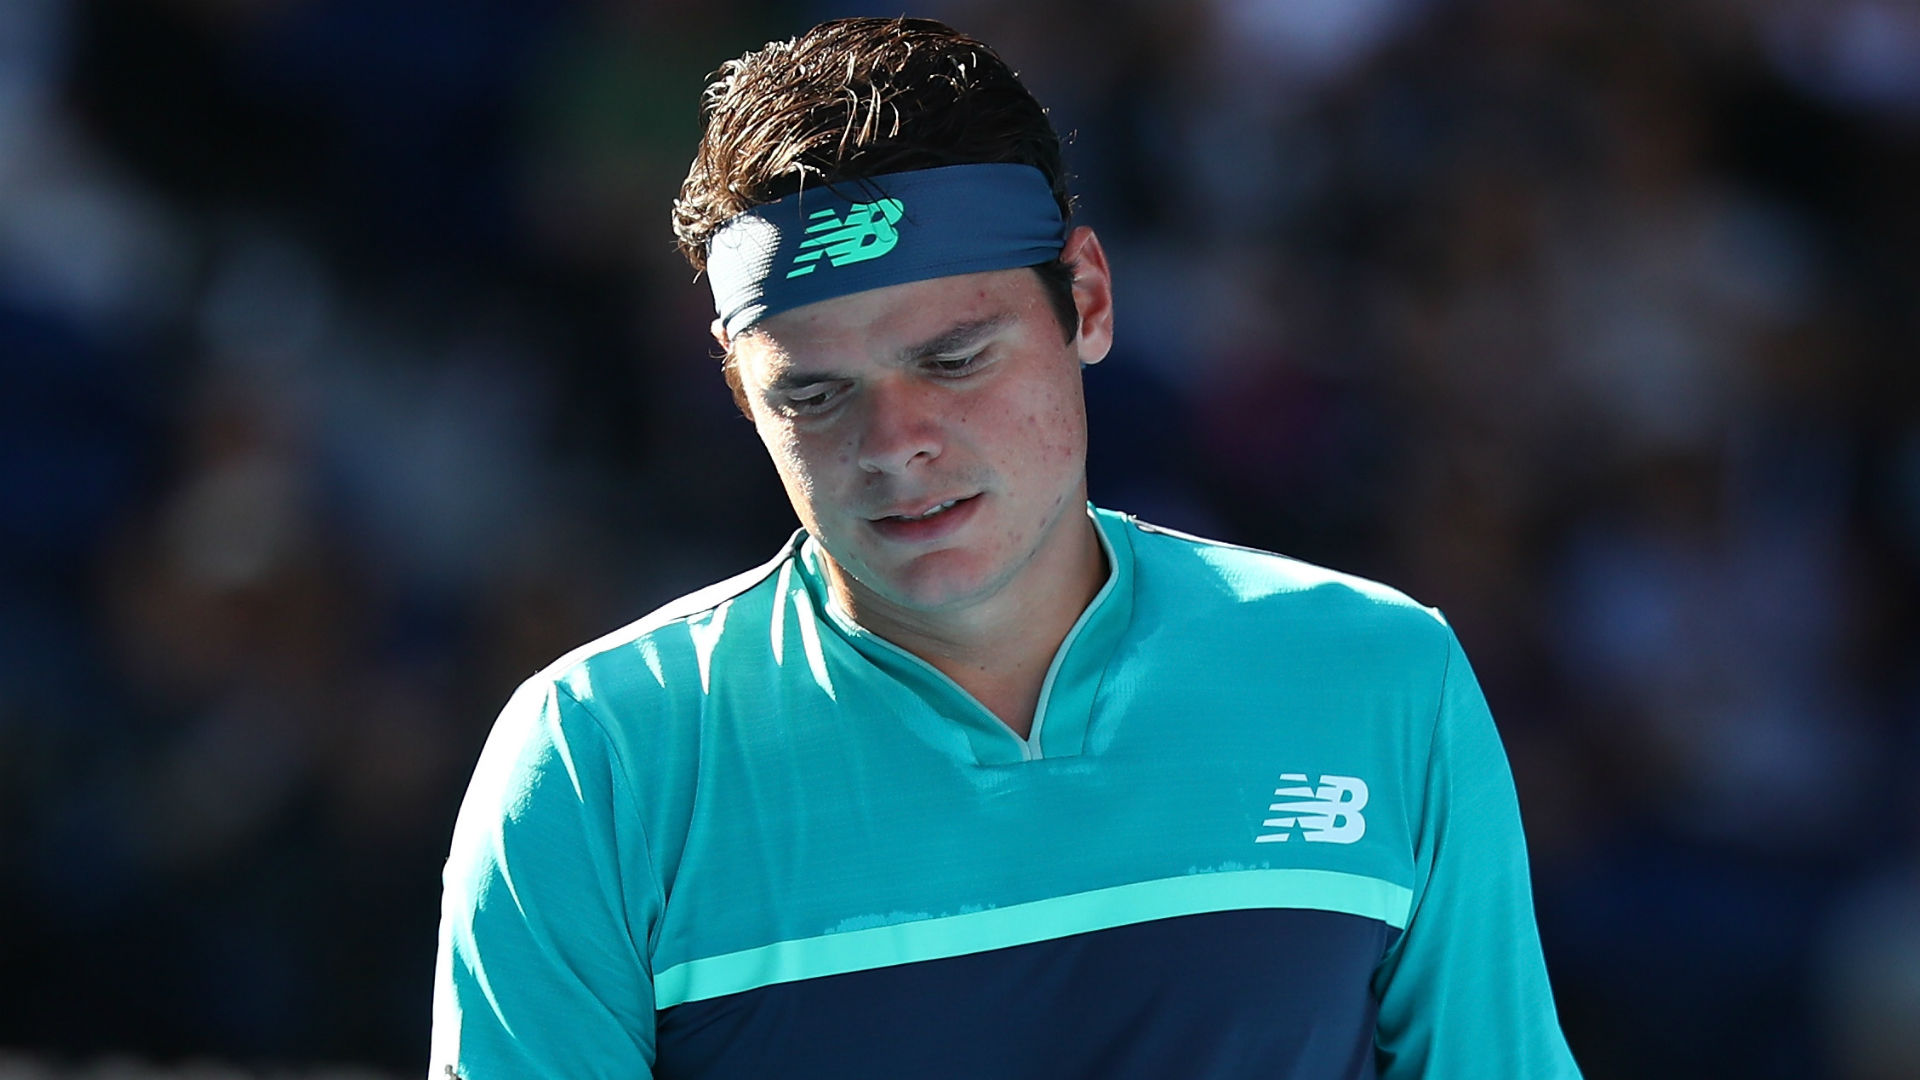 Milos Raonic to assess knee problem, hopes to avoid surgery